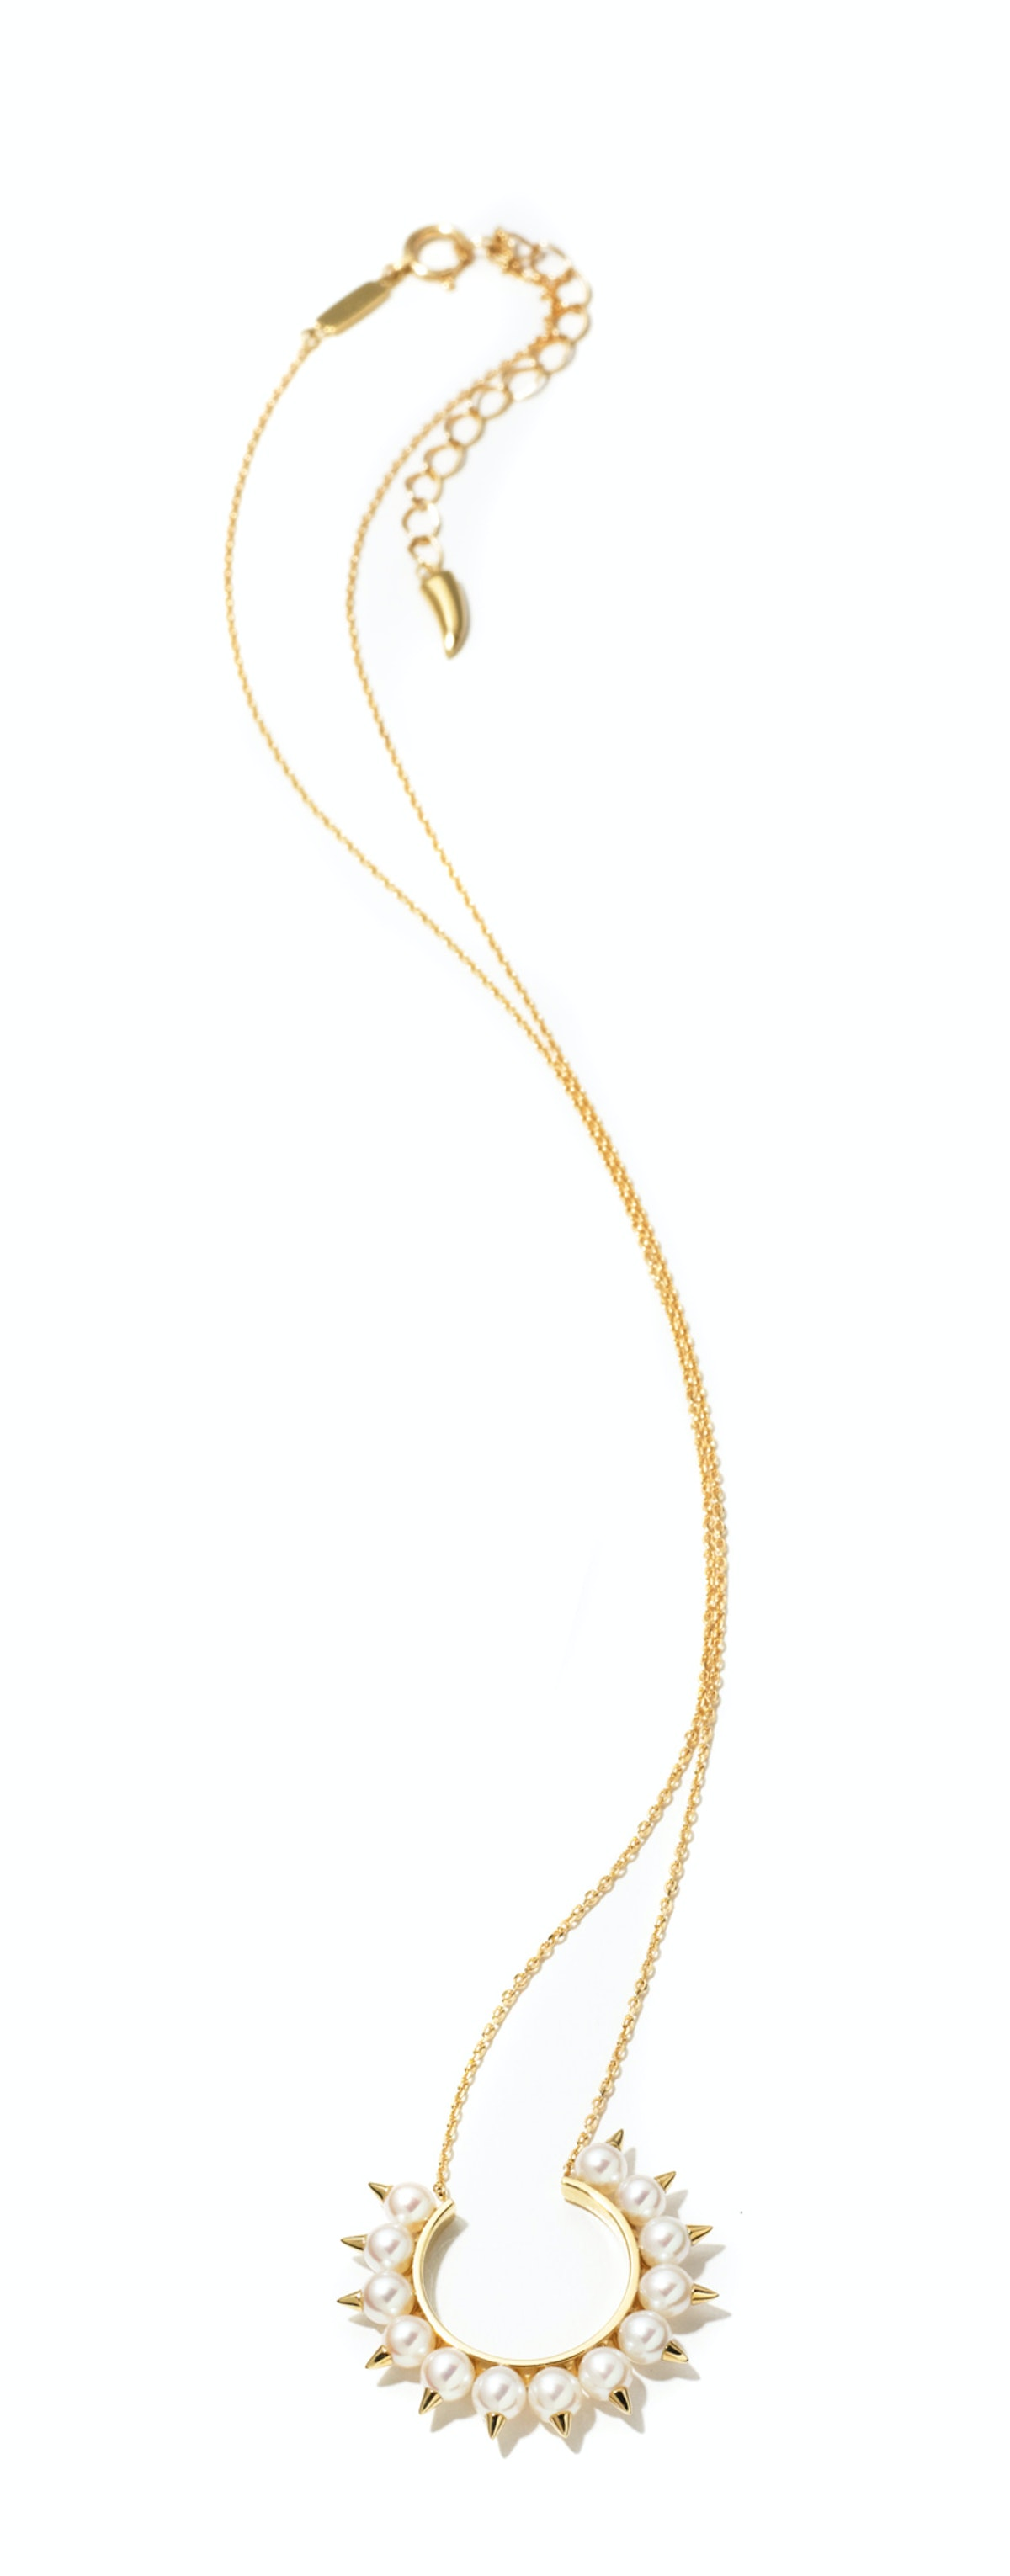 Tasaki Collection by Thakoon gold and freshwater pearl necklace, $2,400, Forty Five Ten, Dallas.